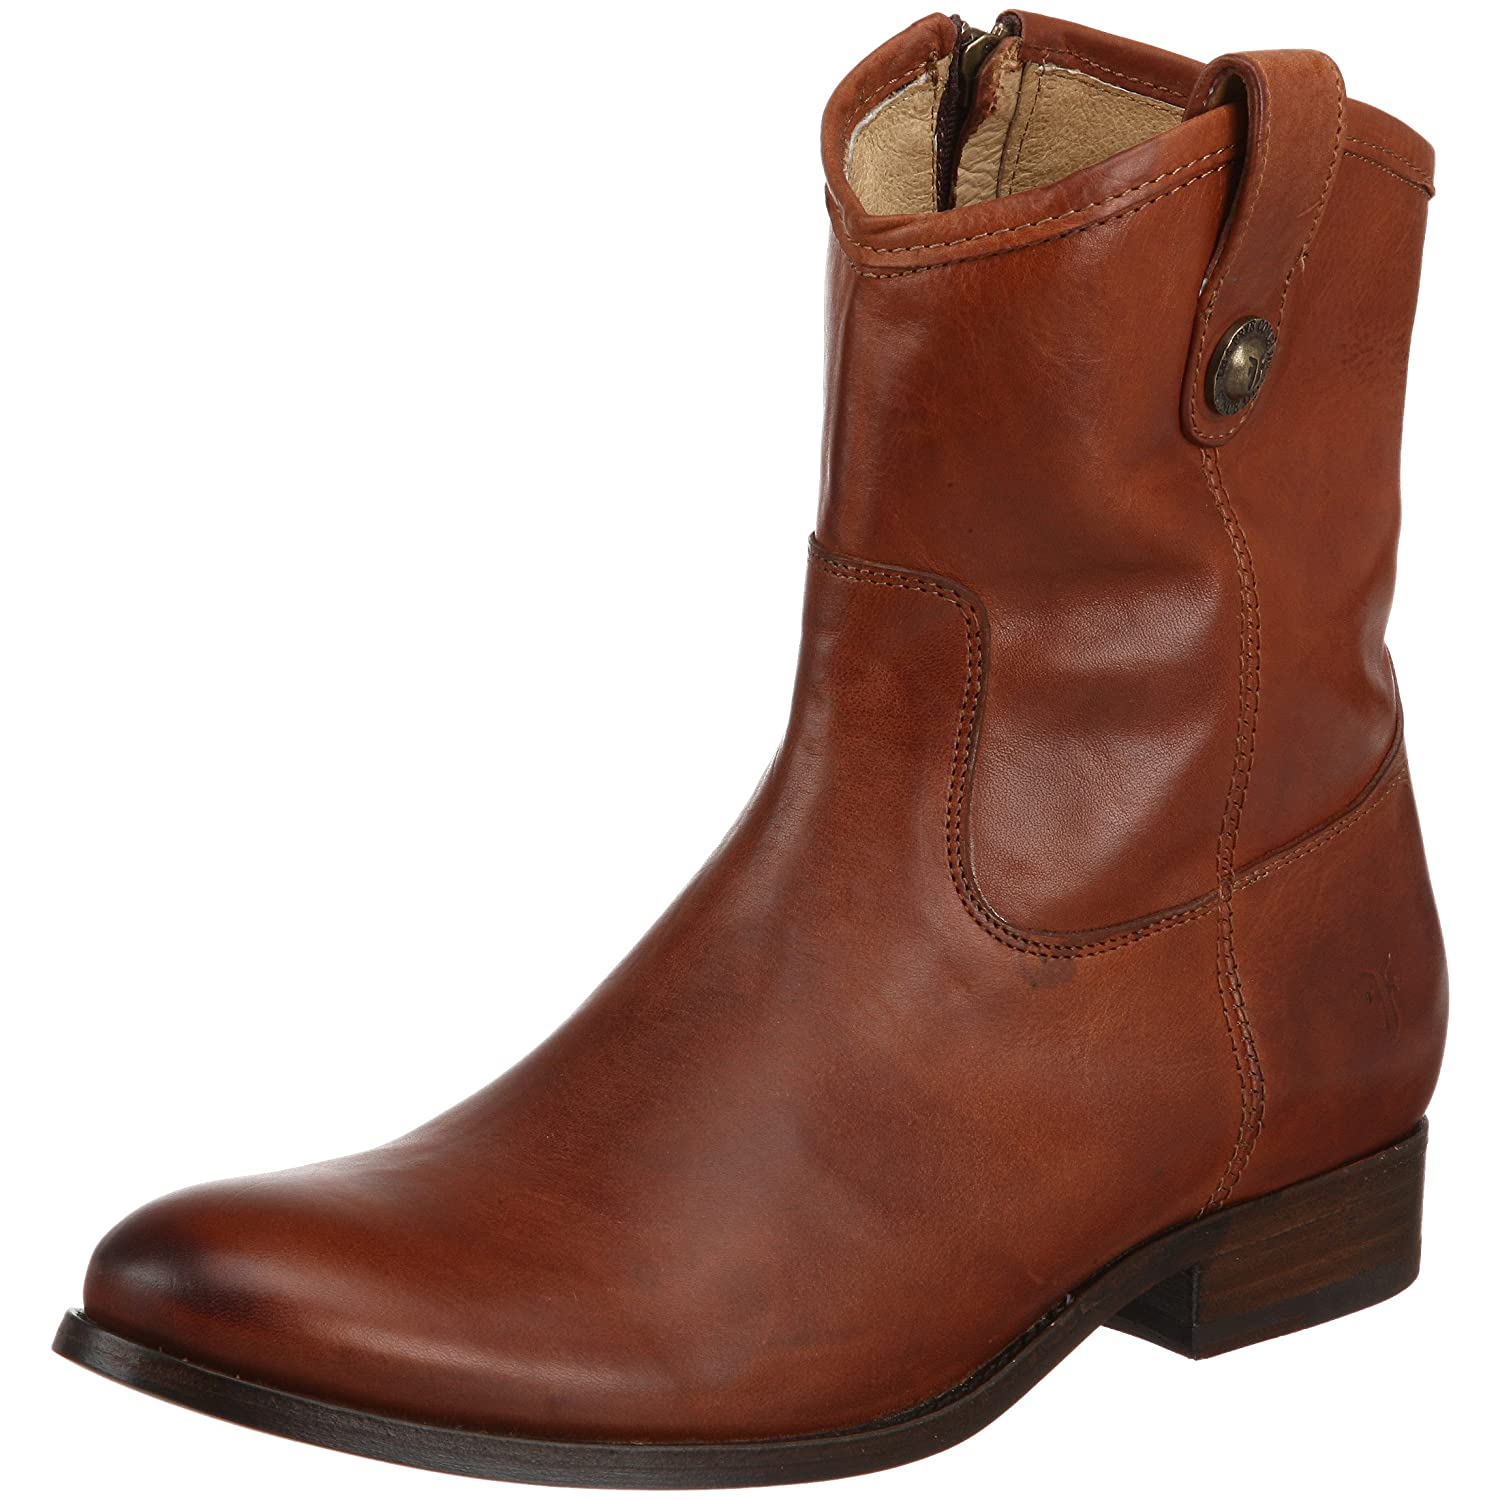 FRYE Women's Melissa Button Short Ankle Boot B003EOAMSY 5.5 B(M) US|Cognac Soft Vintage Leather-77897